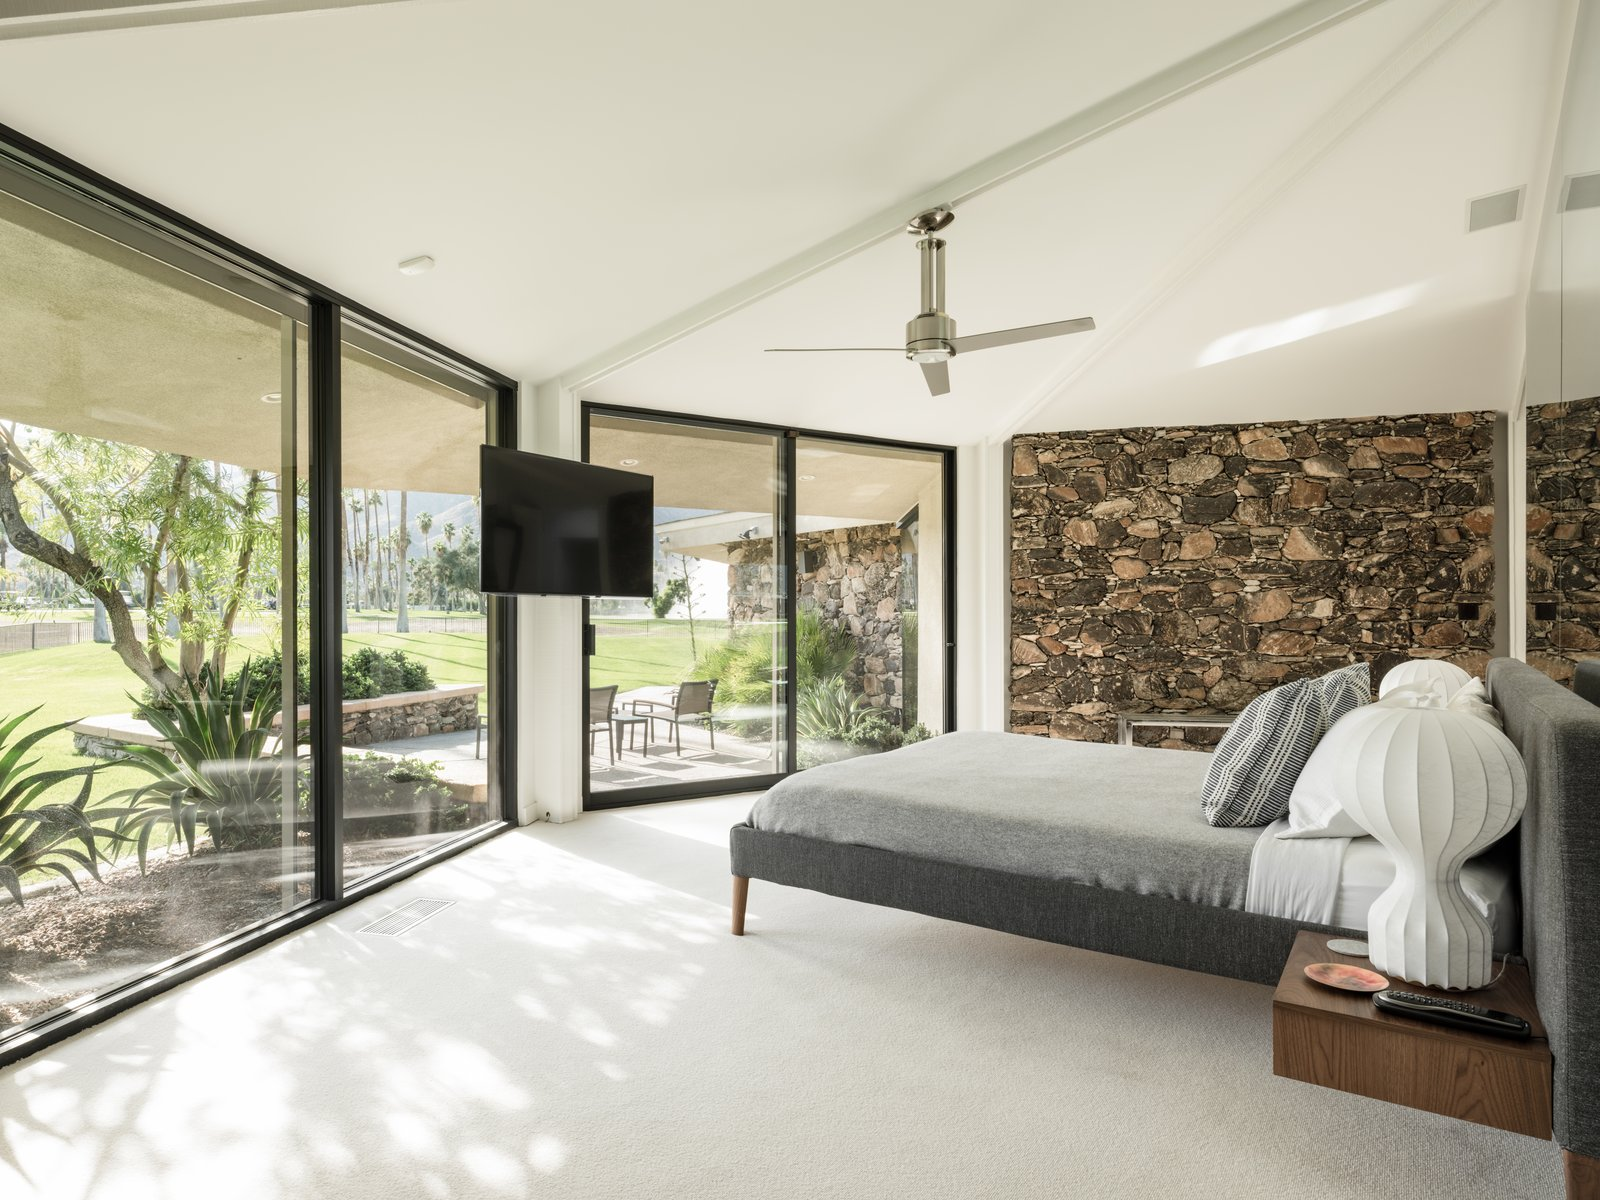 Bedroom, Ceiling Lighting, Lamps, Bed, Carpet Floor, Night Stands, and Table Lighting The master bedroom.  Photo 11 of 19 in Own William Krisel's Palm Springs Pod House For $2.5M